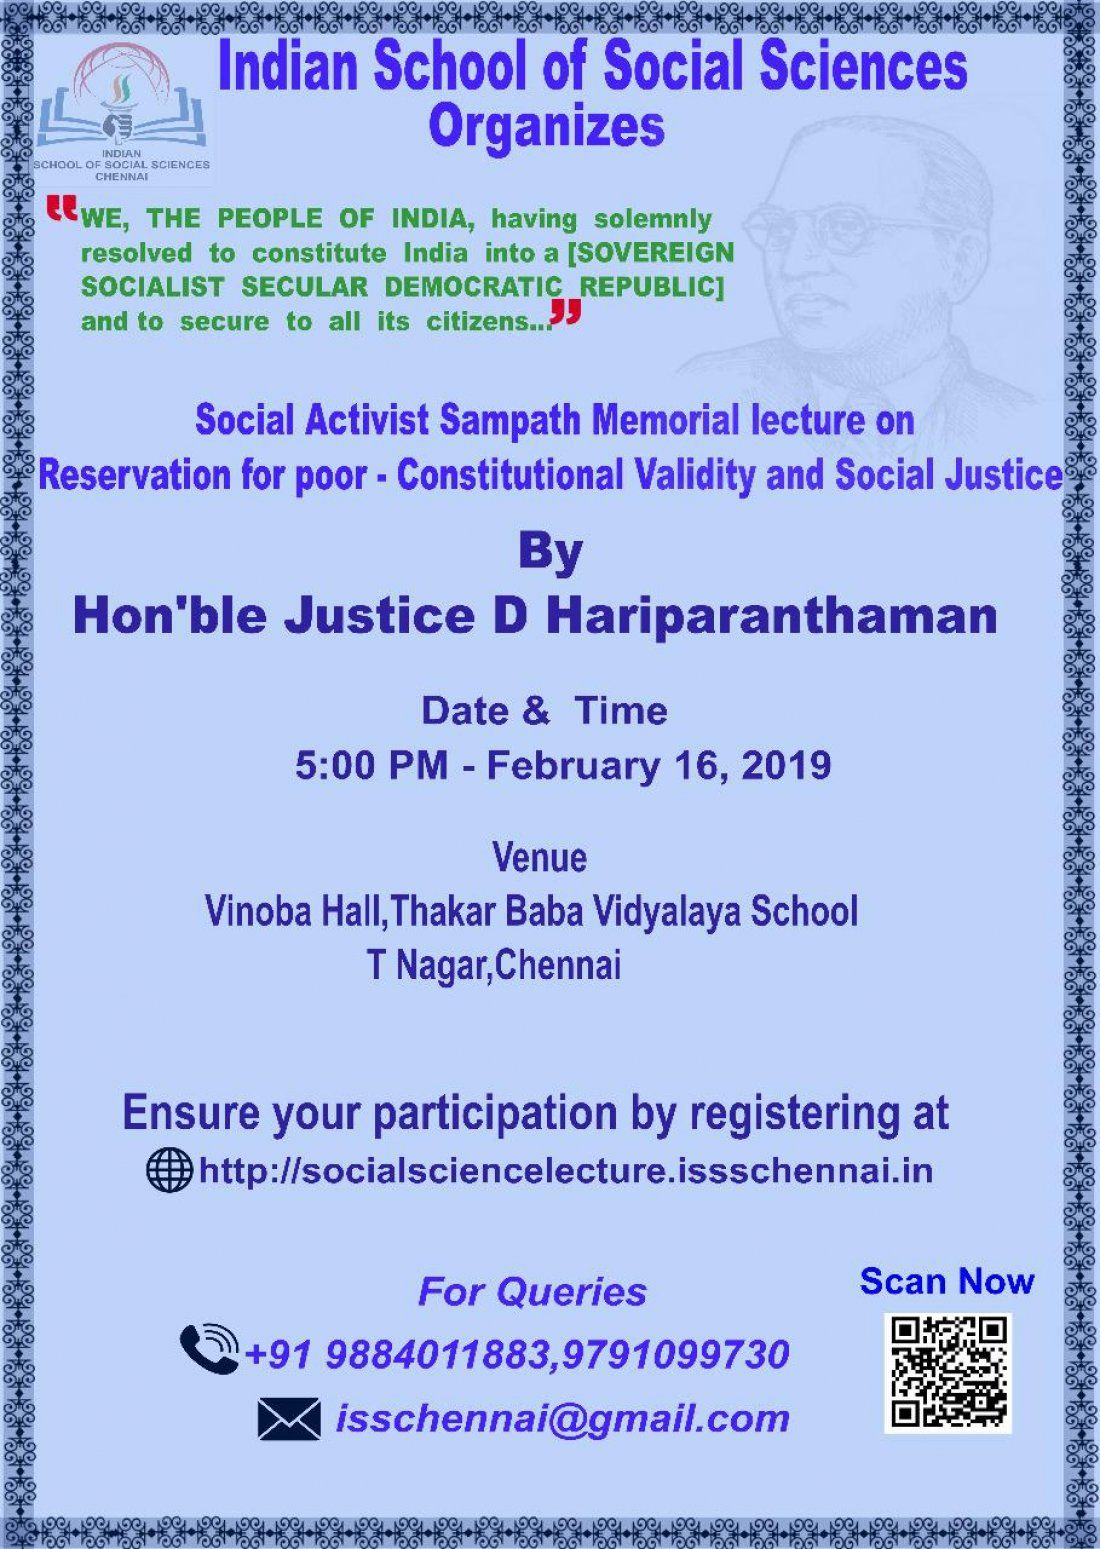 Social Activist Sampath Memorial Lecture on Reservation for the Poor